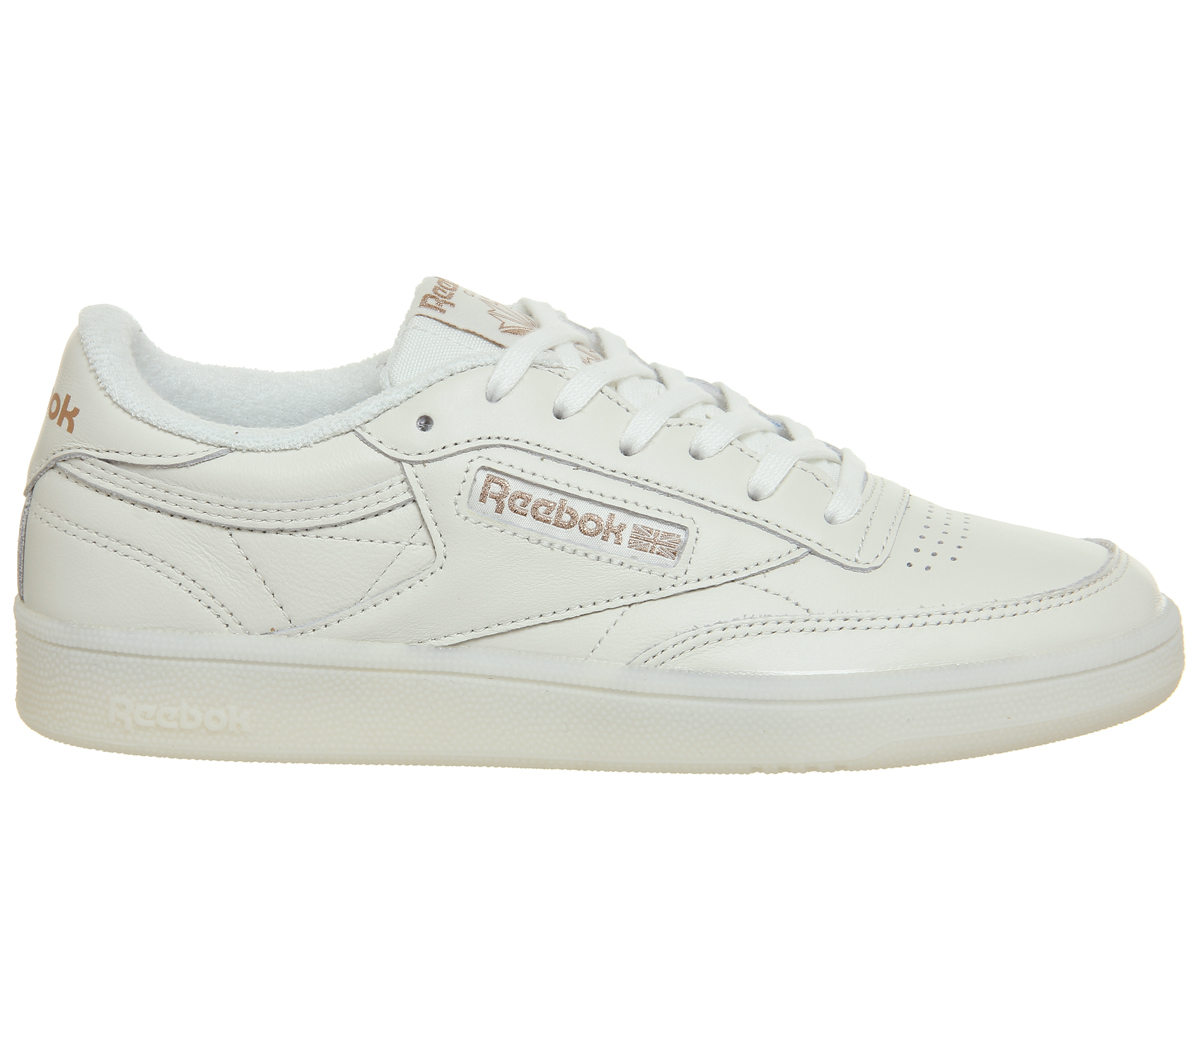 5e186c0c0d7 Sentinel Womens Reebok Club C 85 Trainers Chalk Rose Gold Exclusive Trainers  Shoes